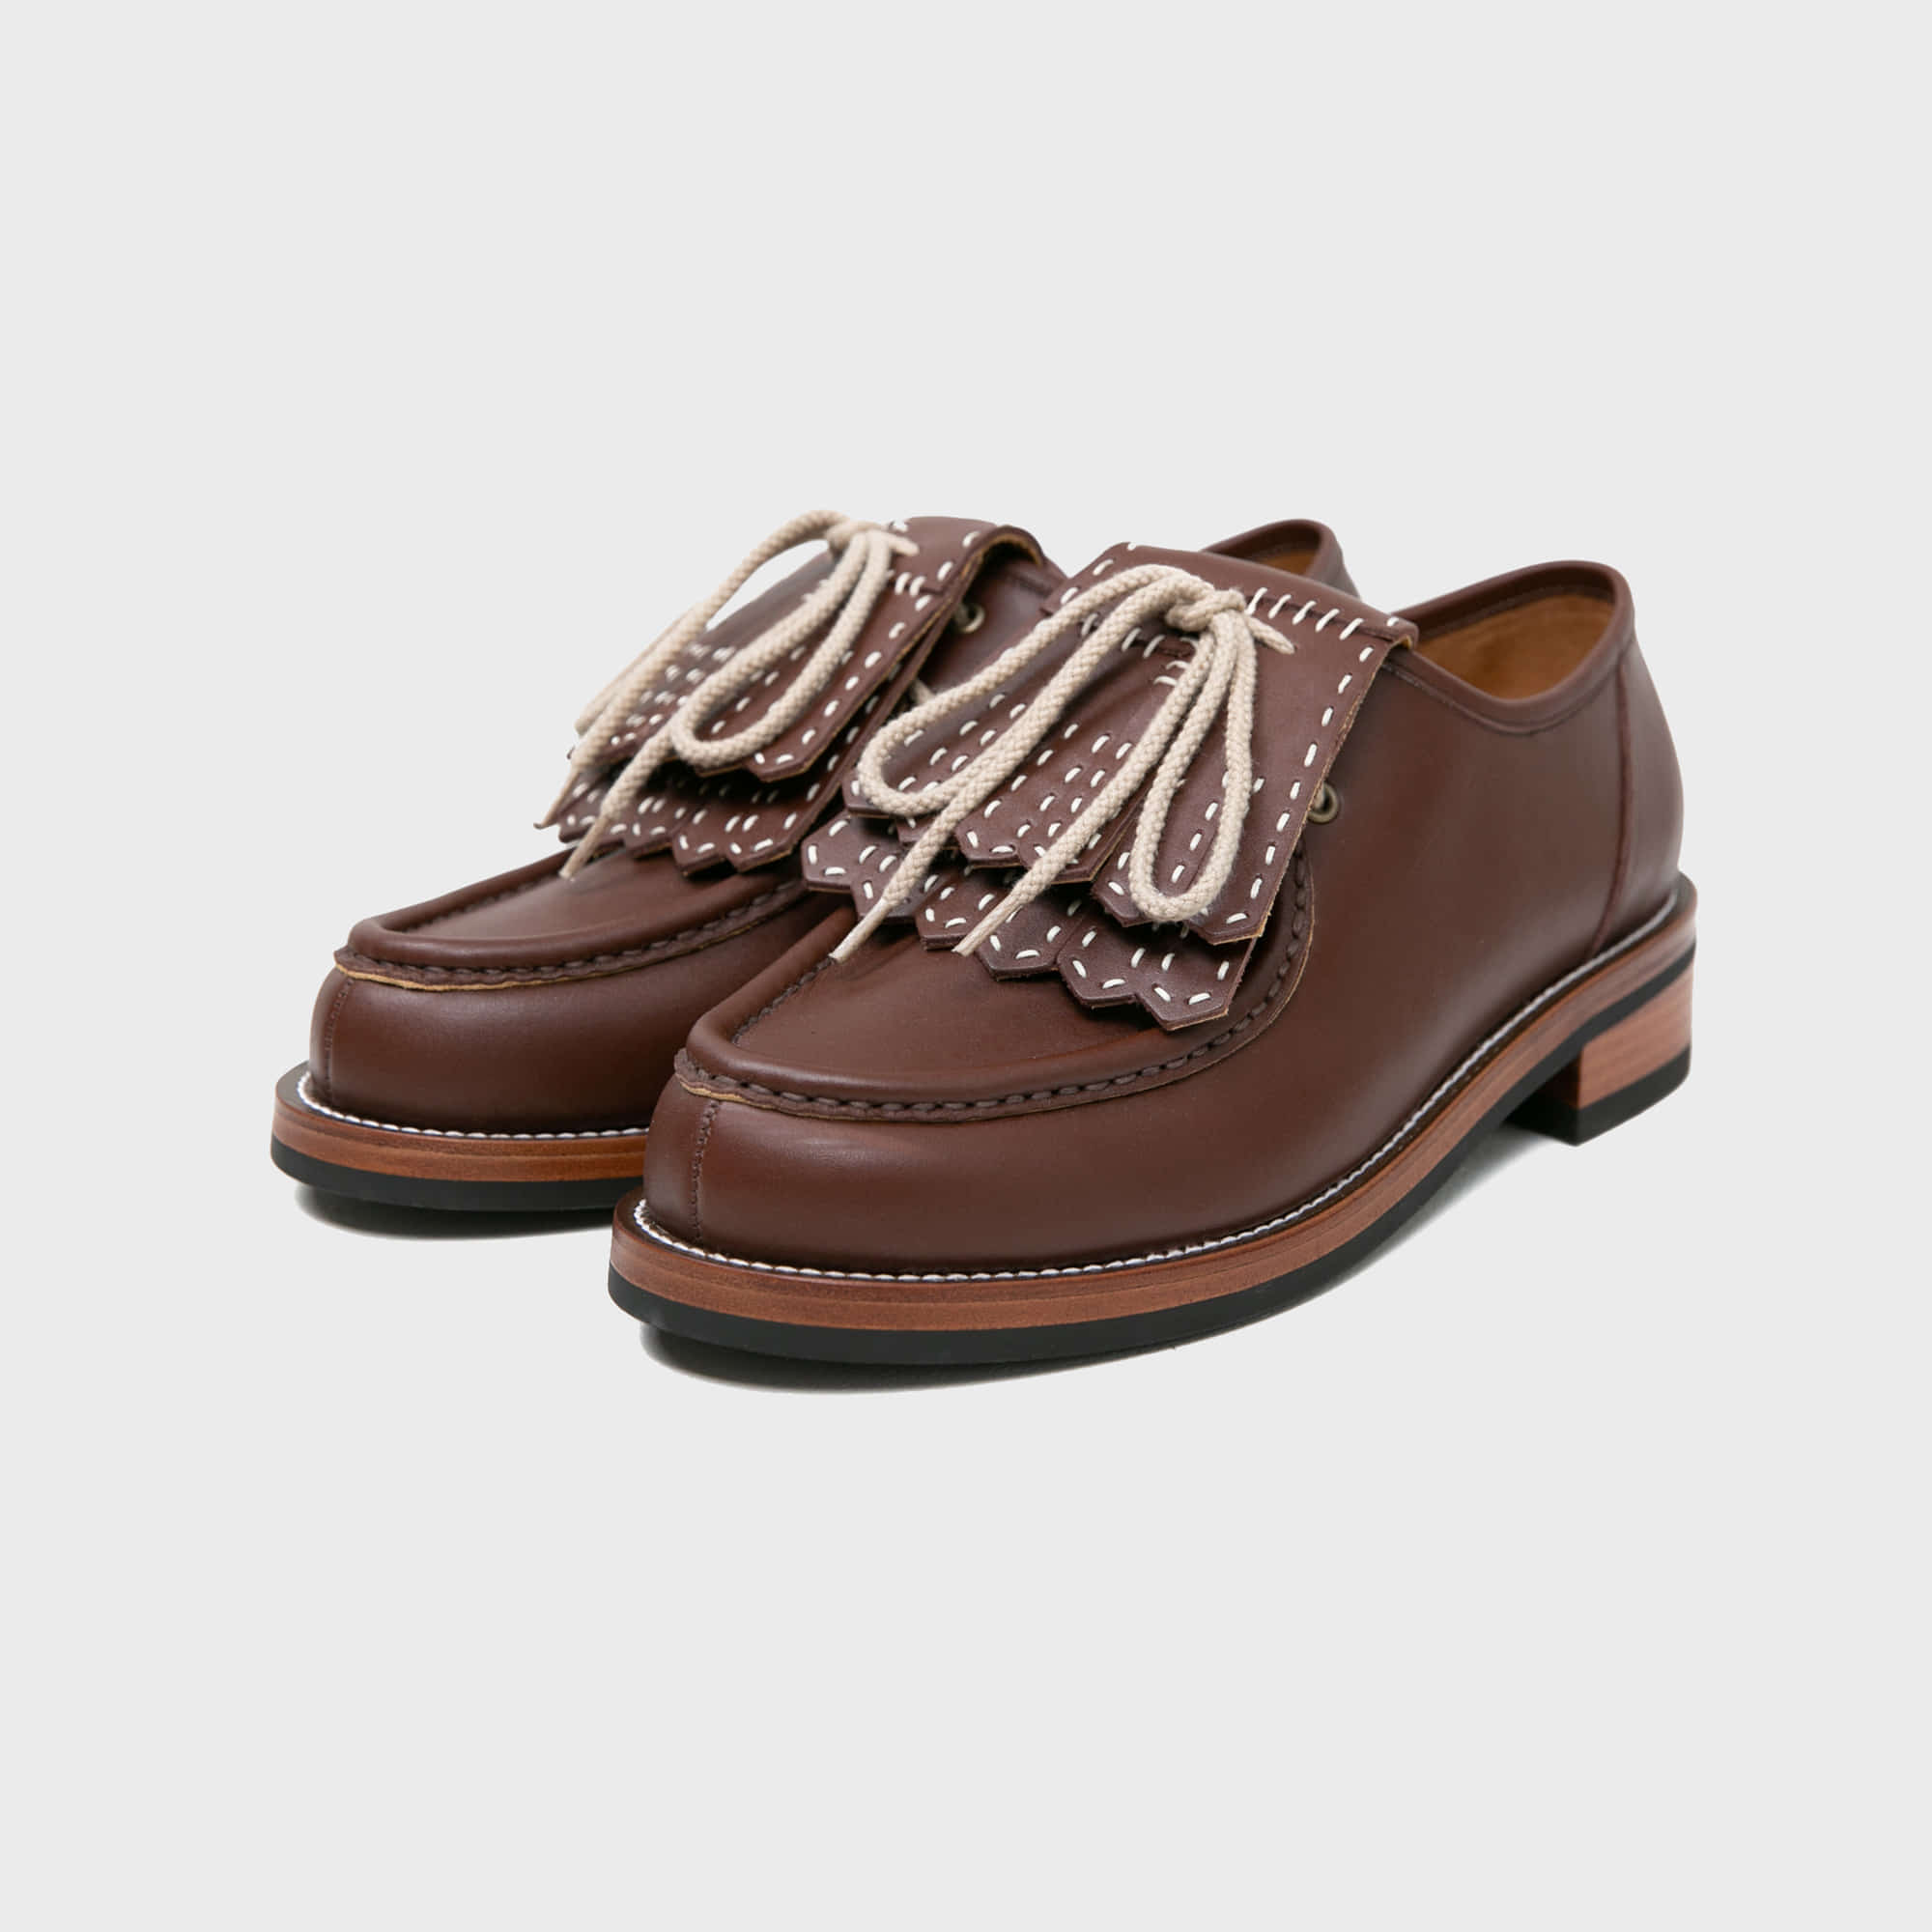 [BILLYS&CO X ANGLAN] Kiltie Tongue Shoes - Brown